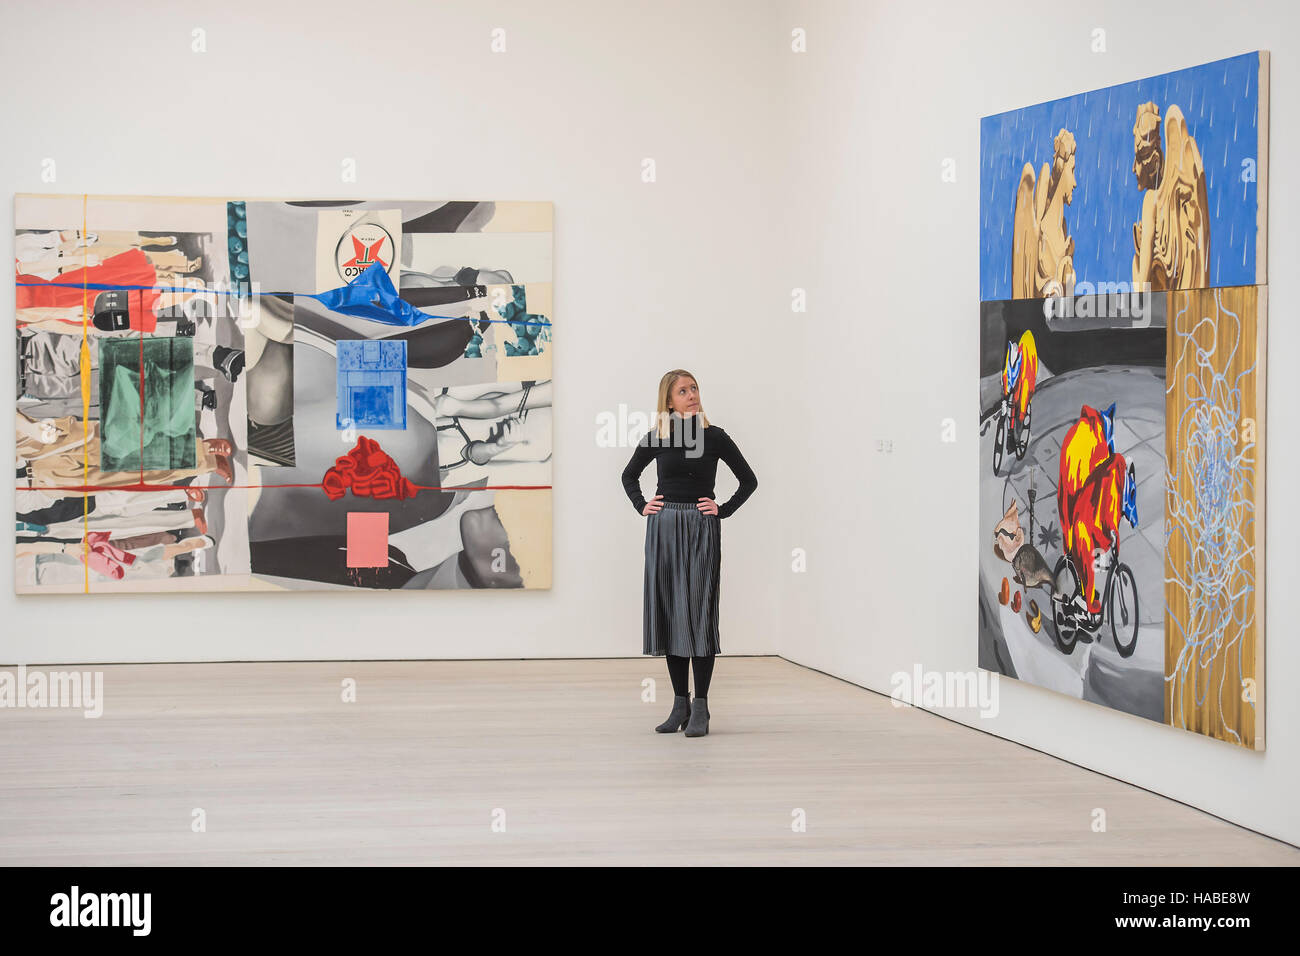 London, UK. 29th Nov, 2016. Picture Builder and Angels in the Rain by David Salle - PAINTERS' PAINTERS: Artists - Stock Image